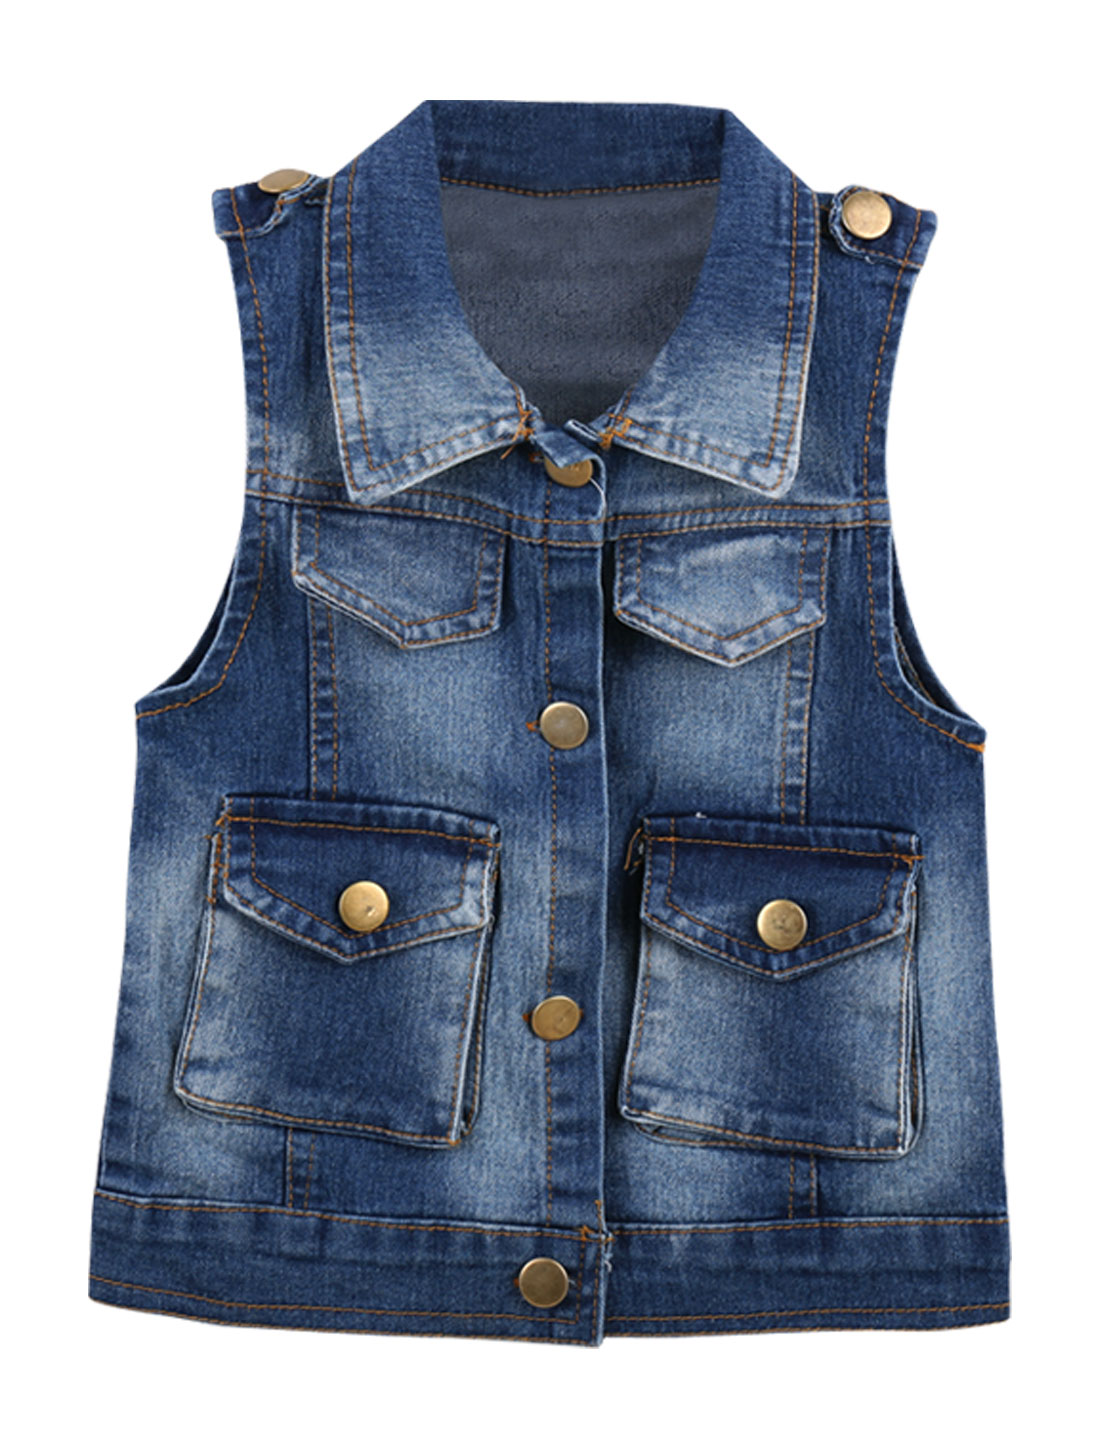 6 Navy Blue Front Button Closure Style Letters Print Stylish Boys Denim Vest